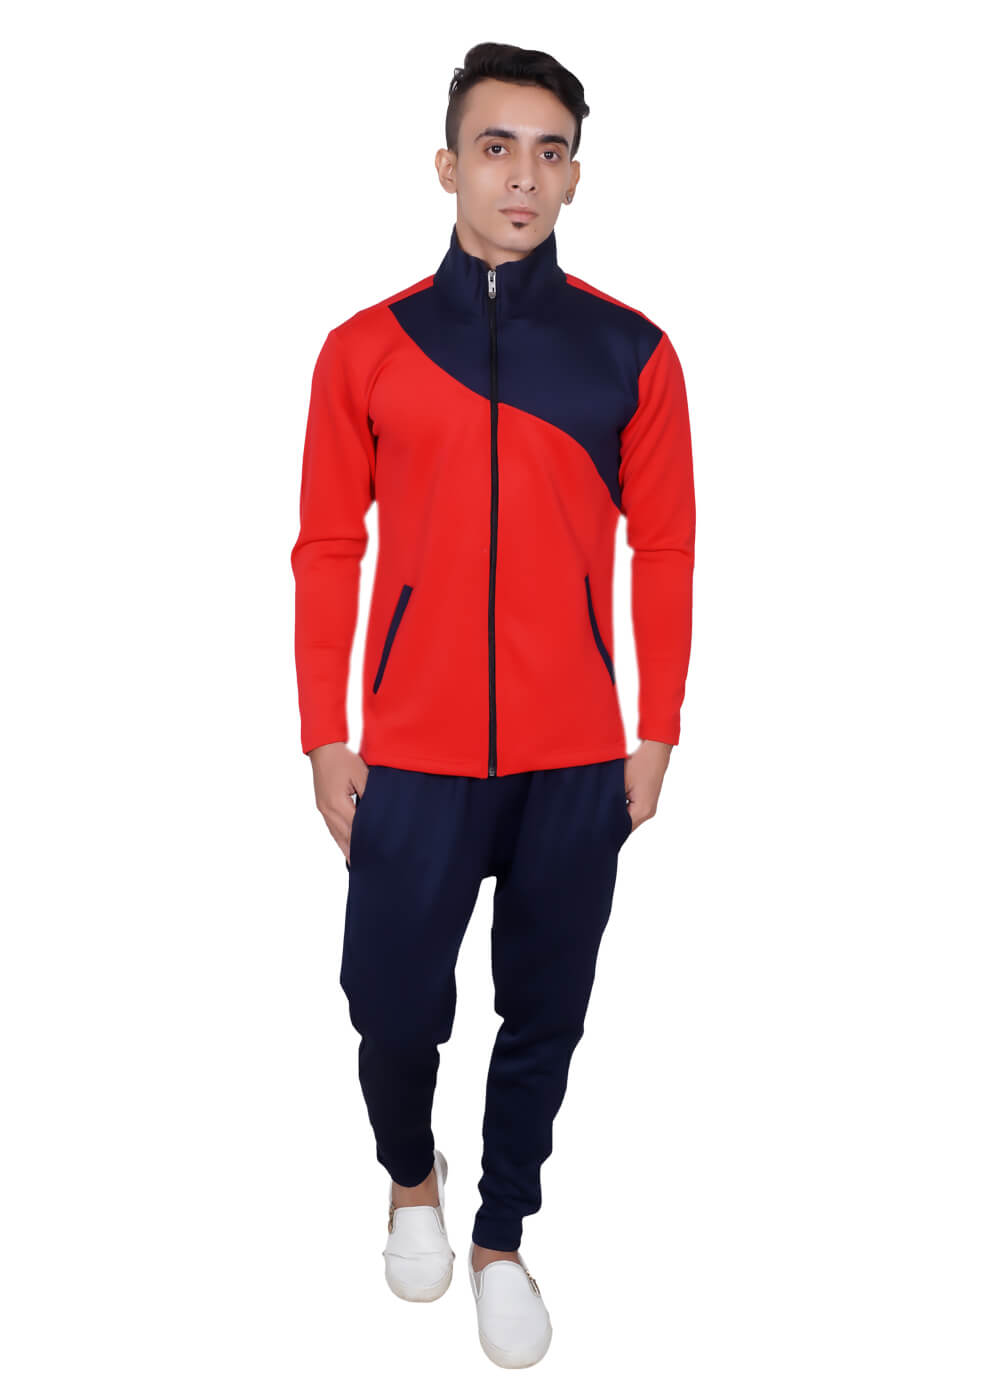 Cheap Tracksuits Manufacturers in Solapur